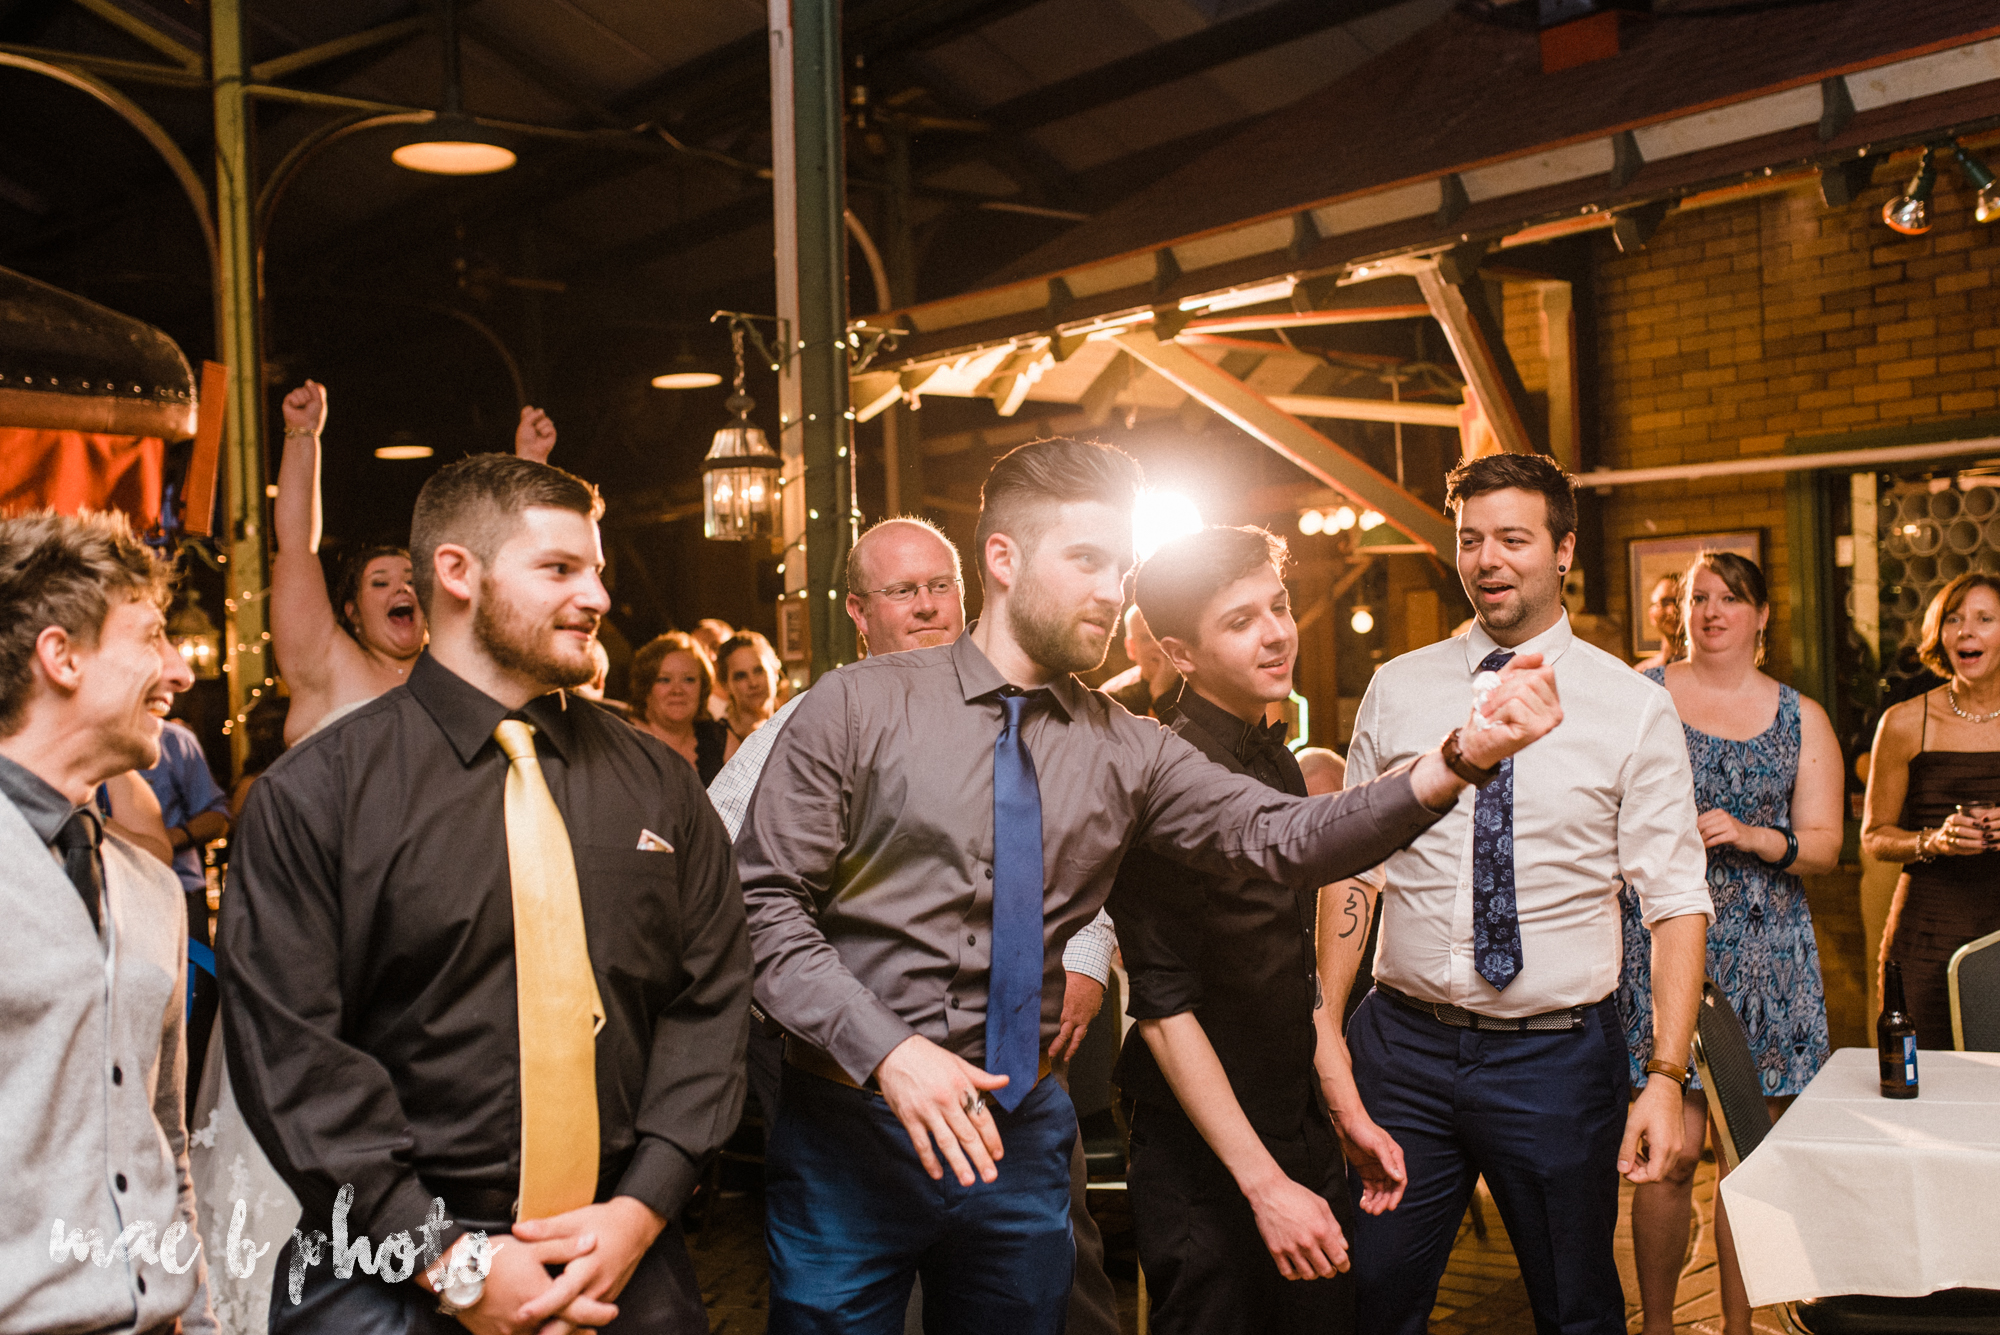 Kristina and ryan's personal vintage glam fall wedding at disalvo's station restaurant and the arnold palmer latrobe country club in latrobe, pa photographed by youngstown wedding photographer mae b photo-83.jpg